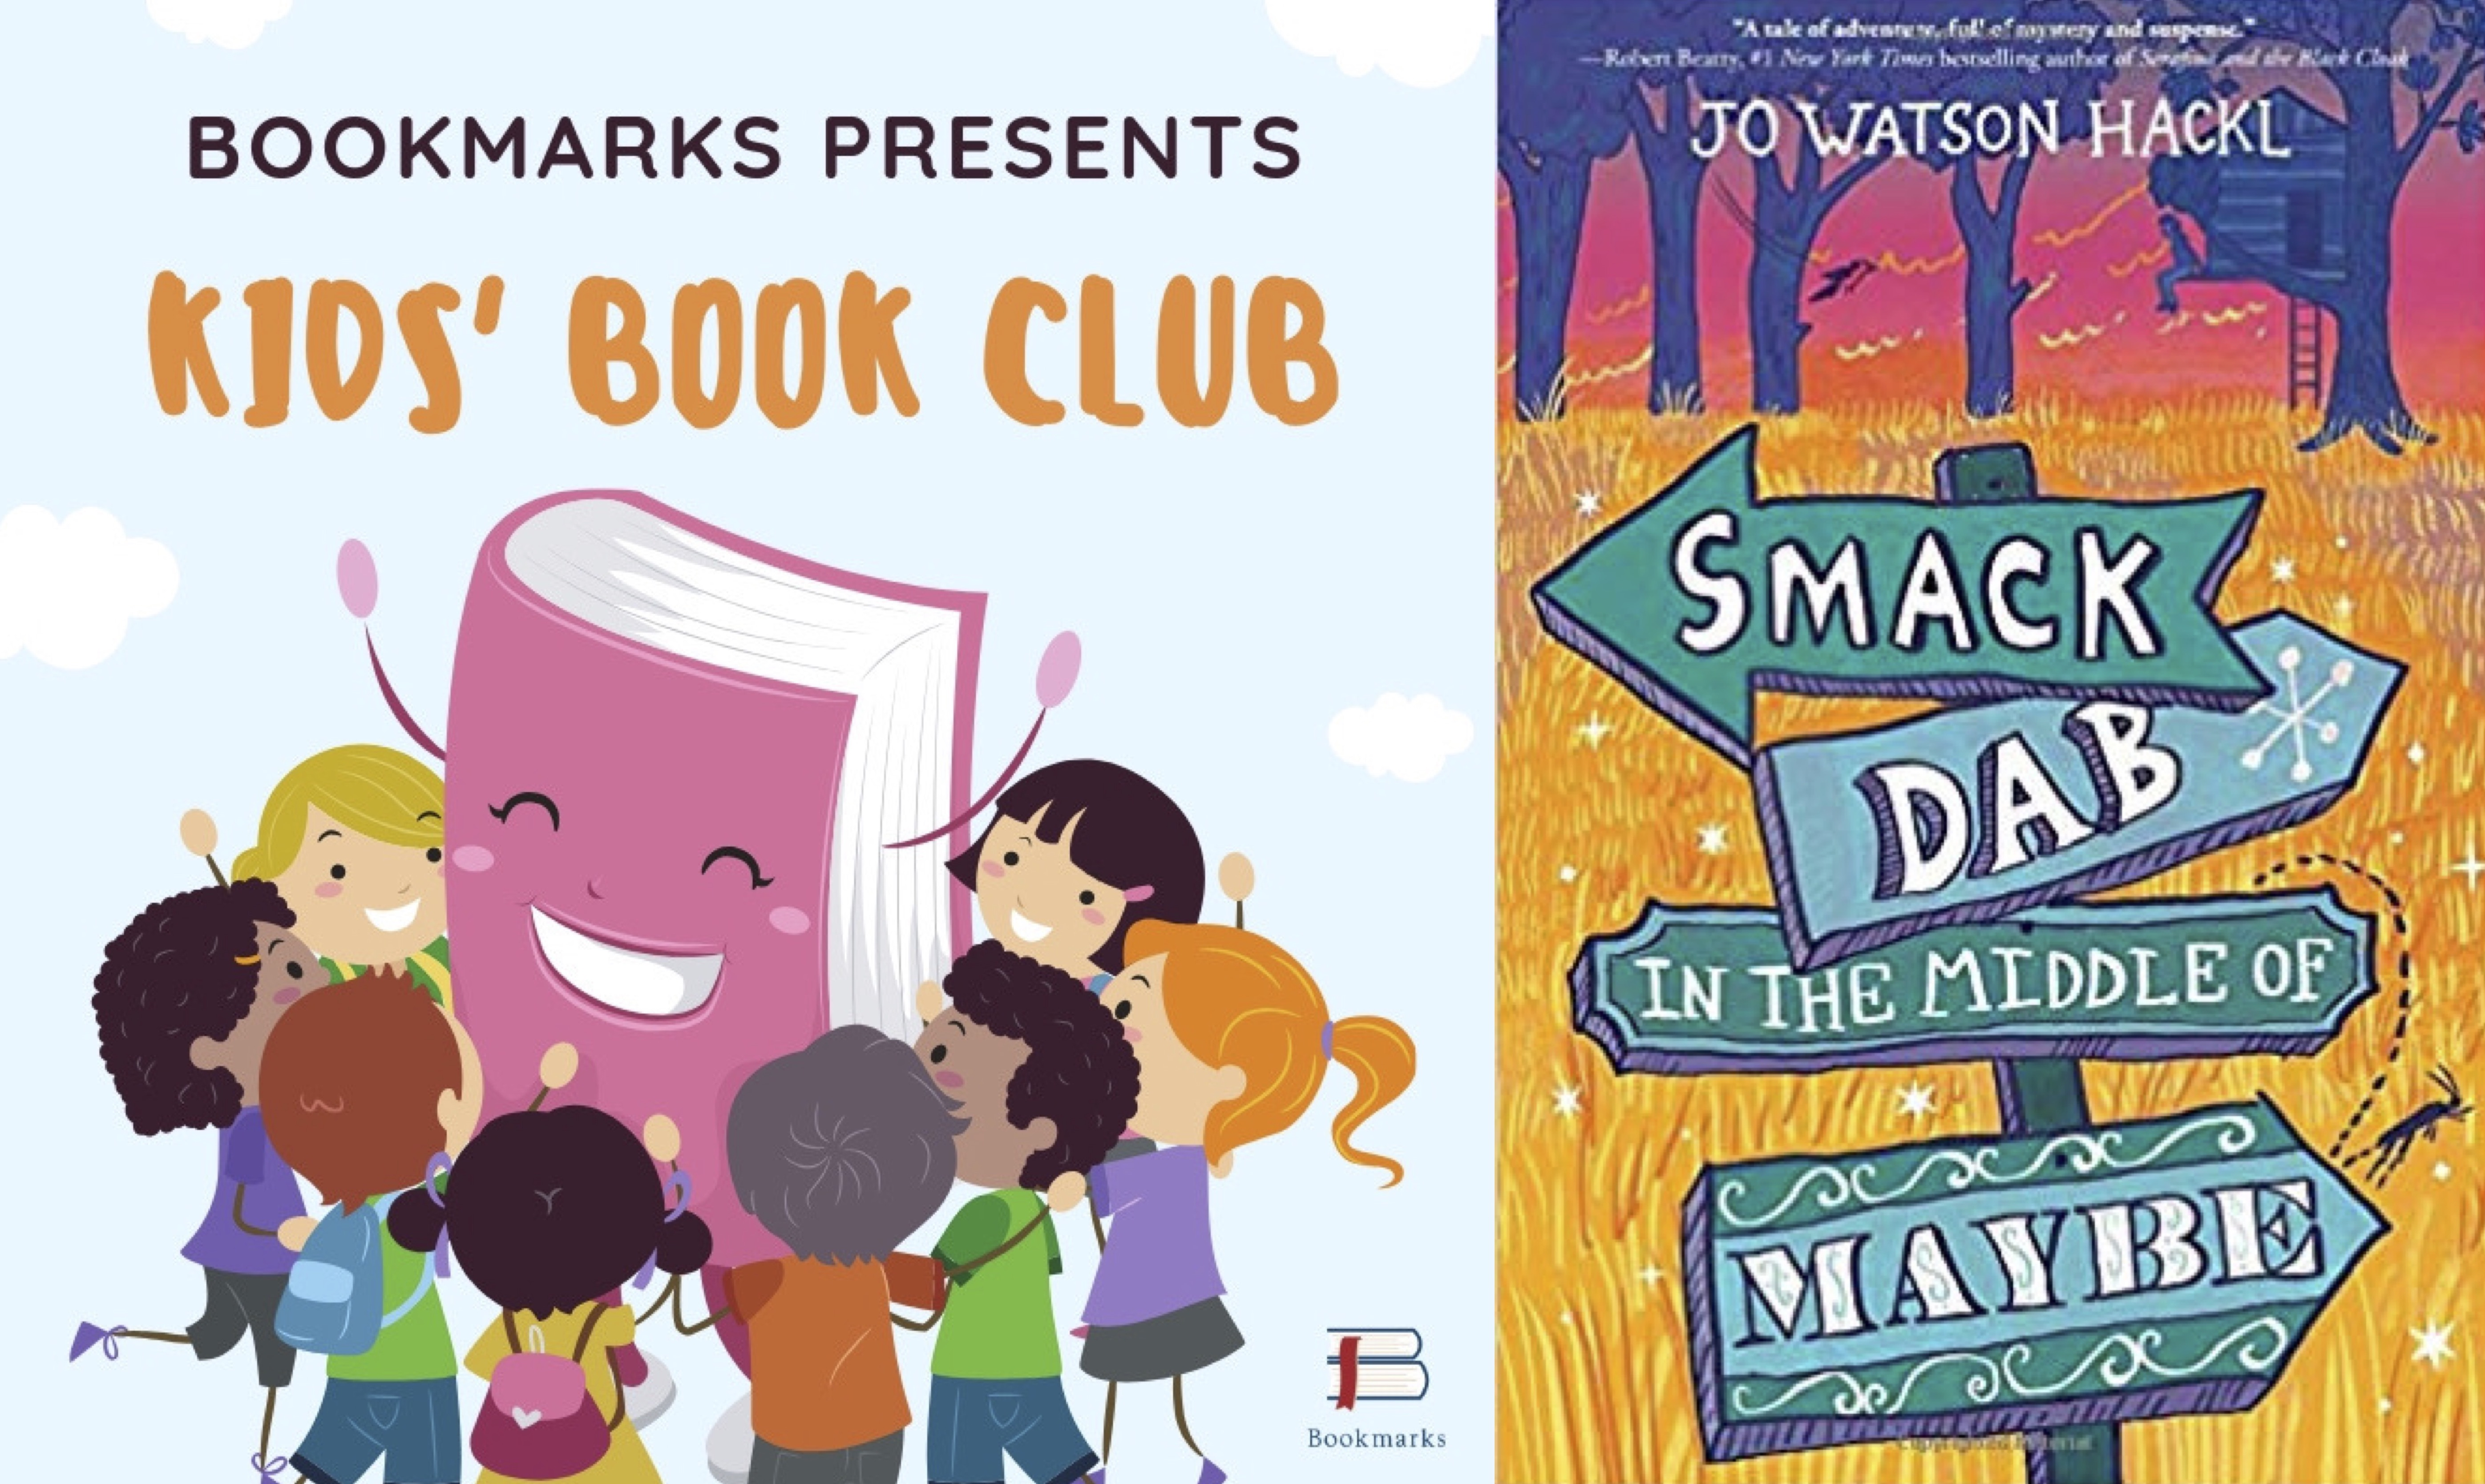 Kids' Book Club at Bookmarks